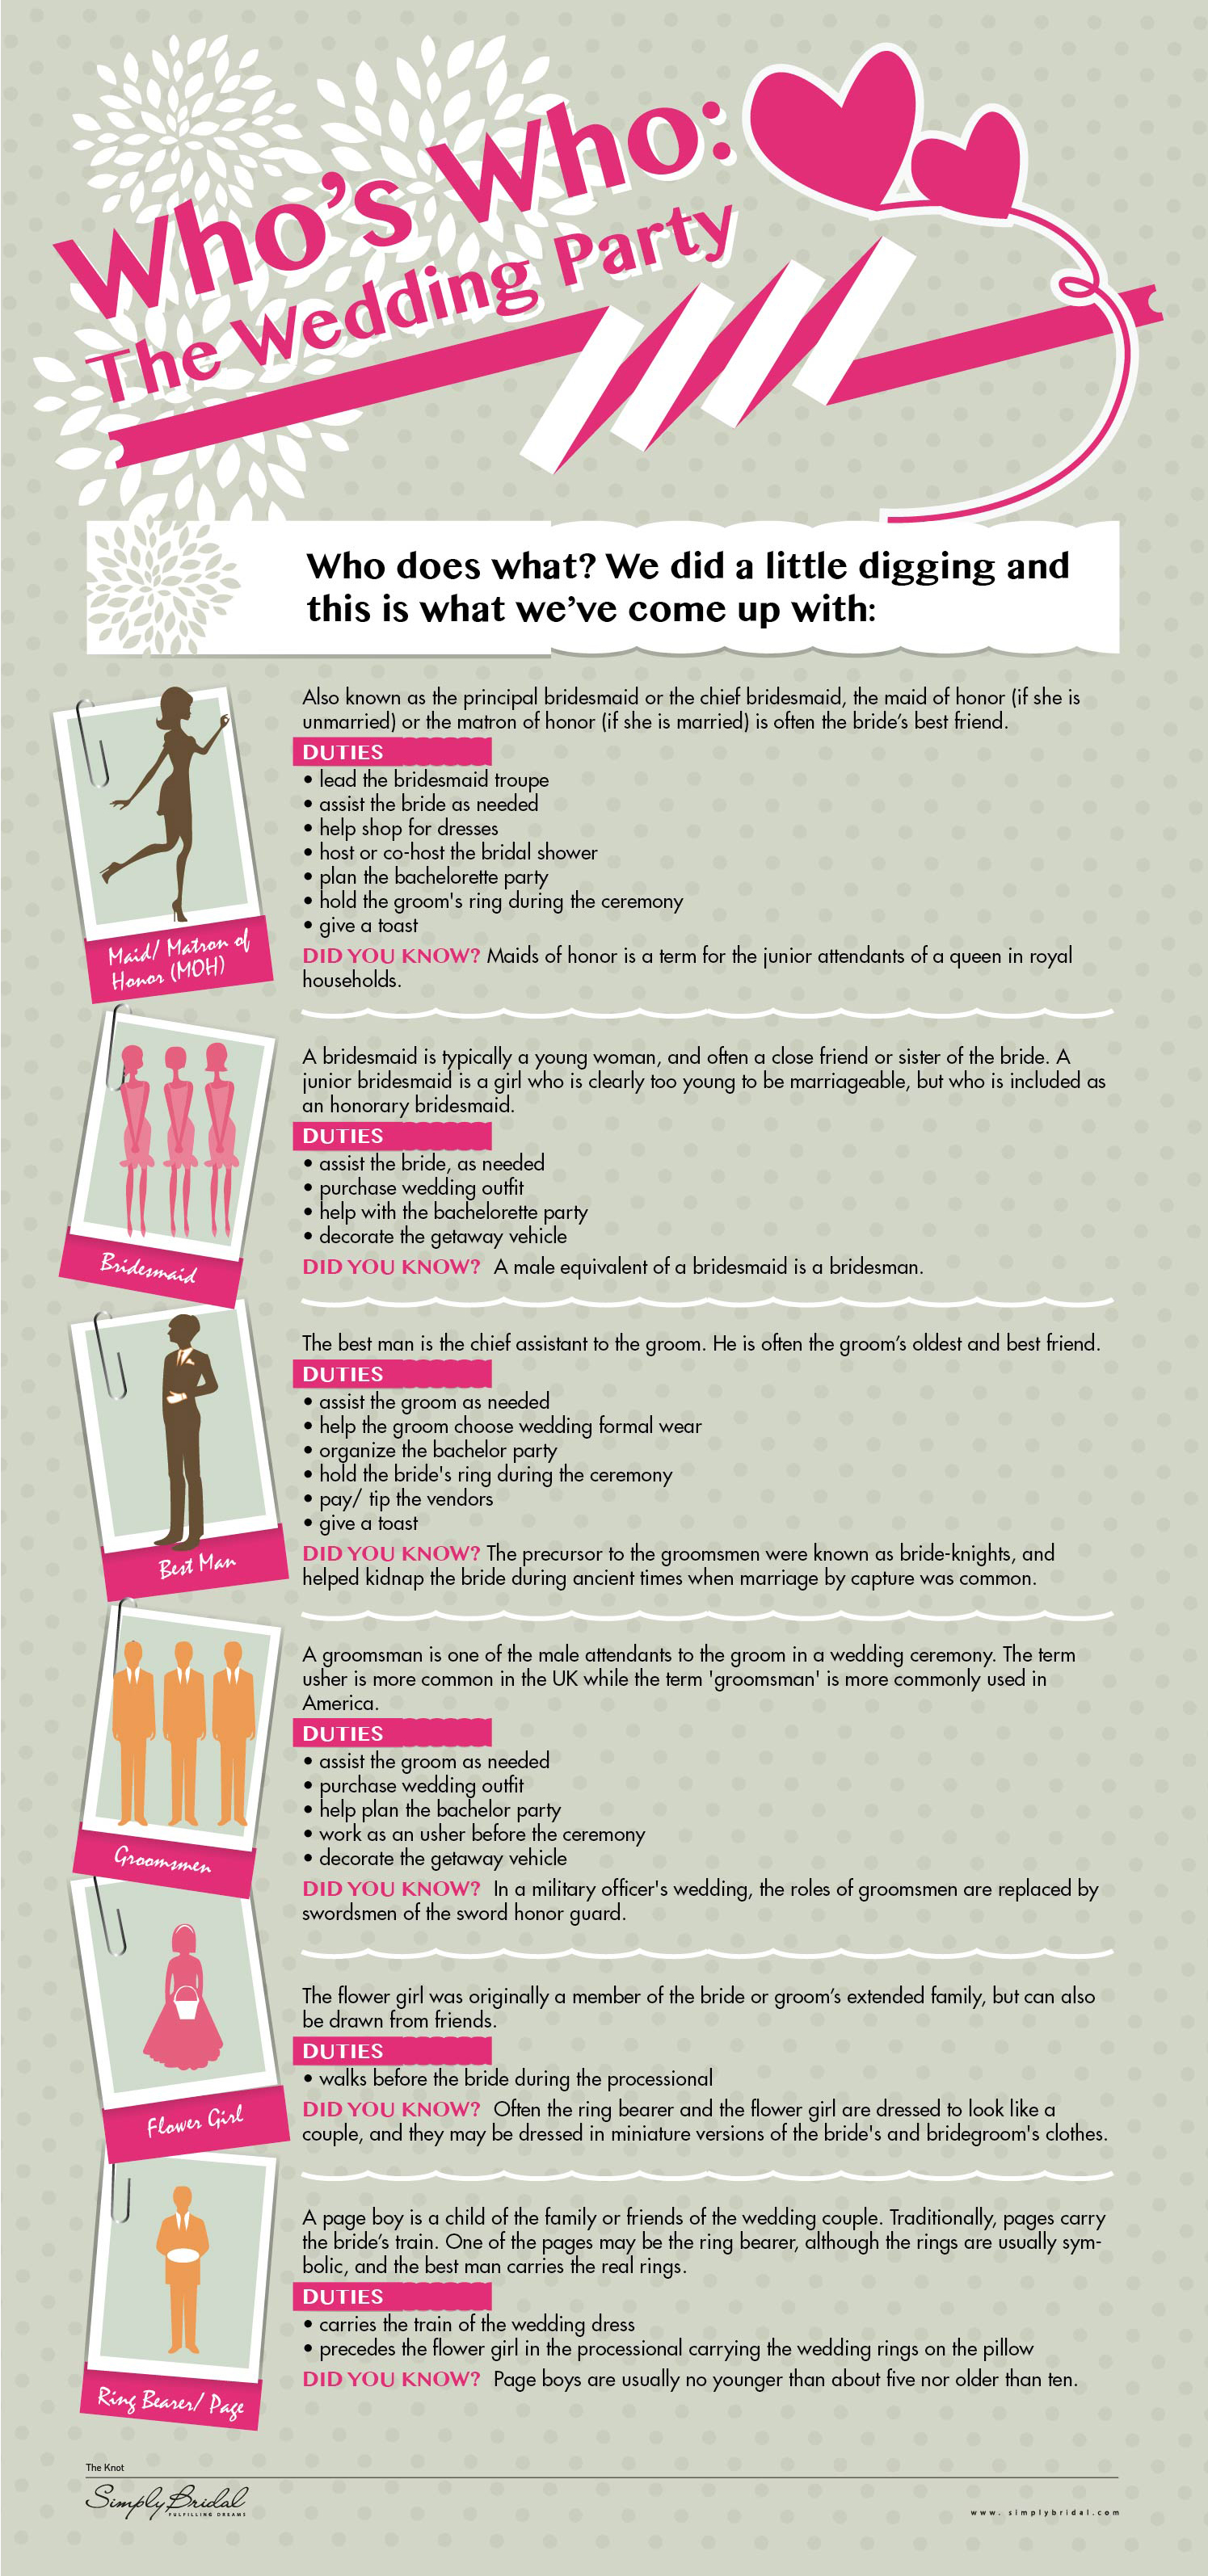 Whos Who The Wedding Party INFOGRAPHIC Infographic List